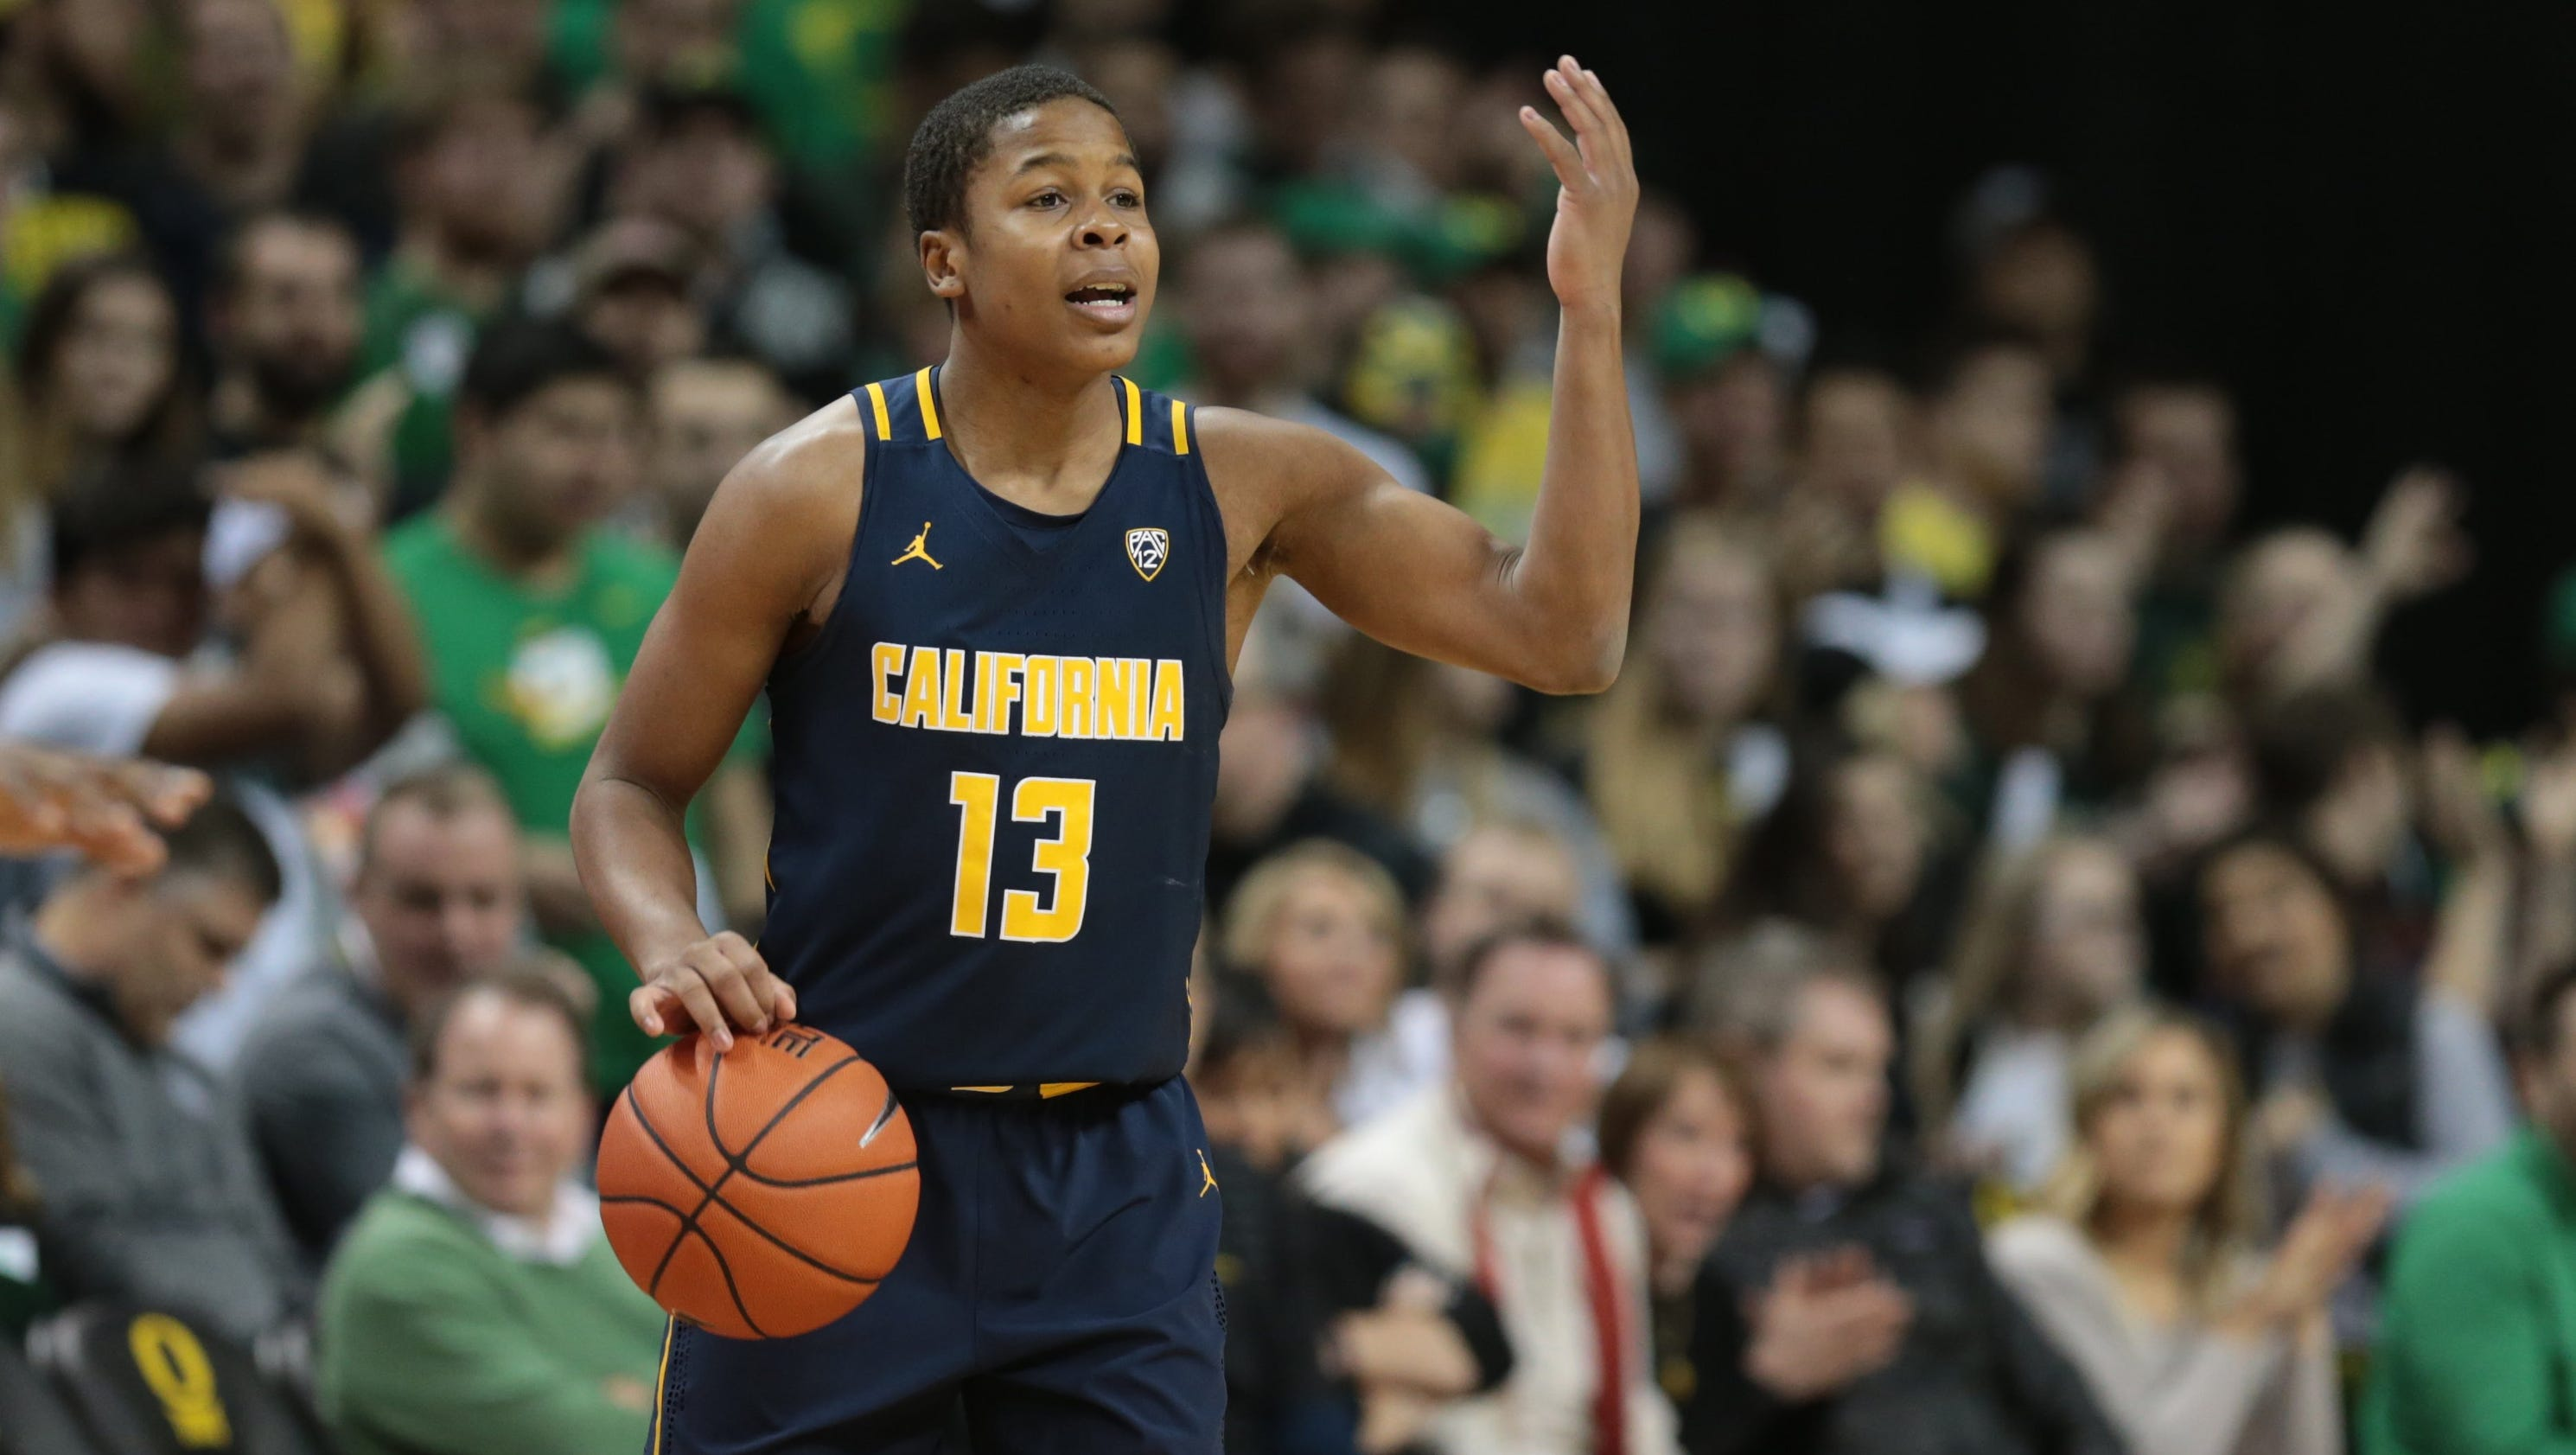 Cal's basketball team loses another starter